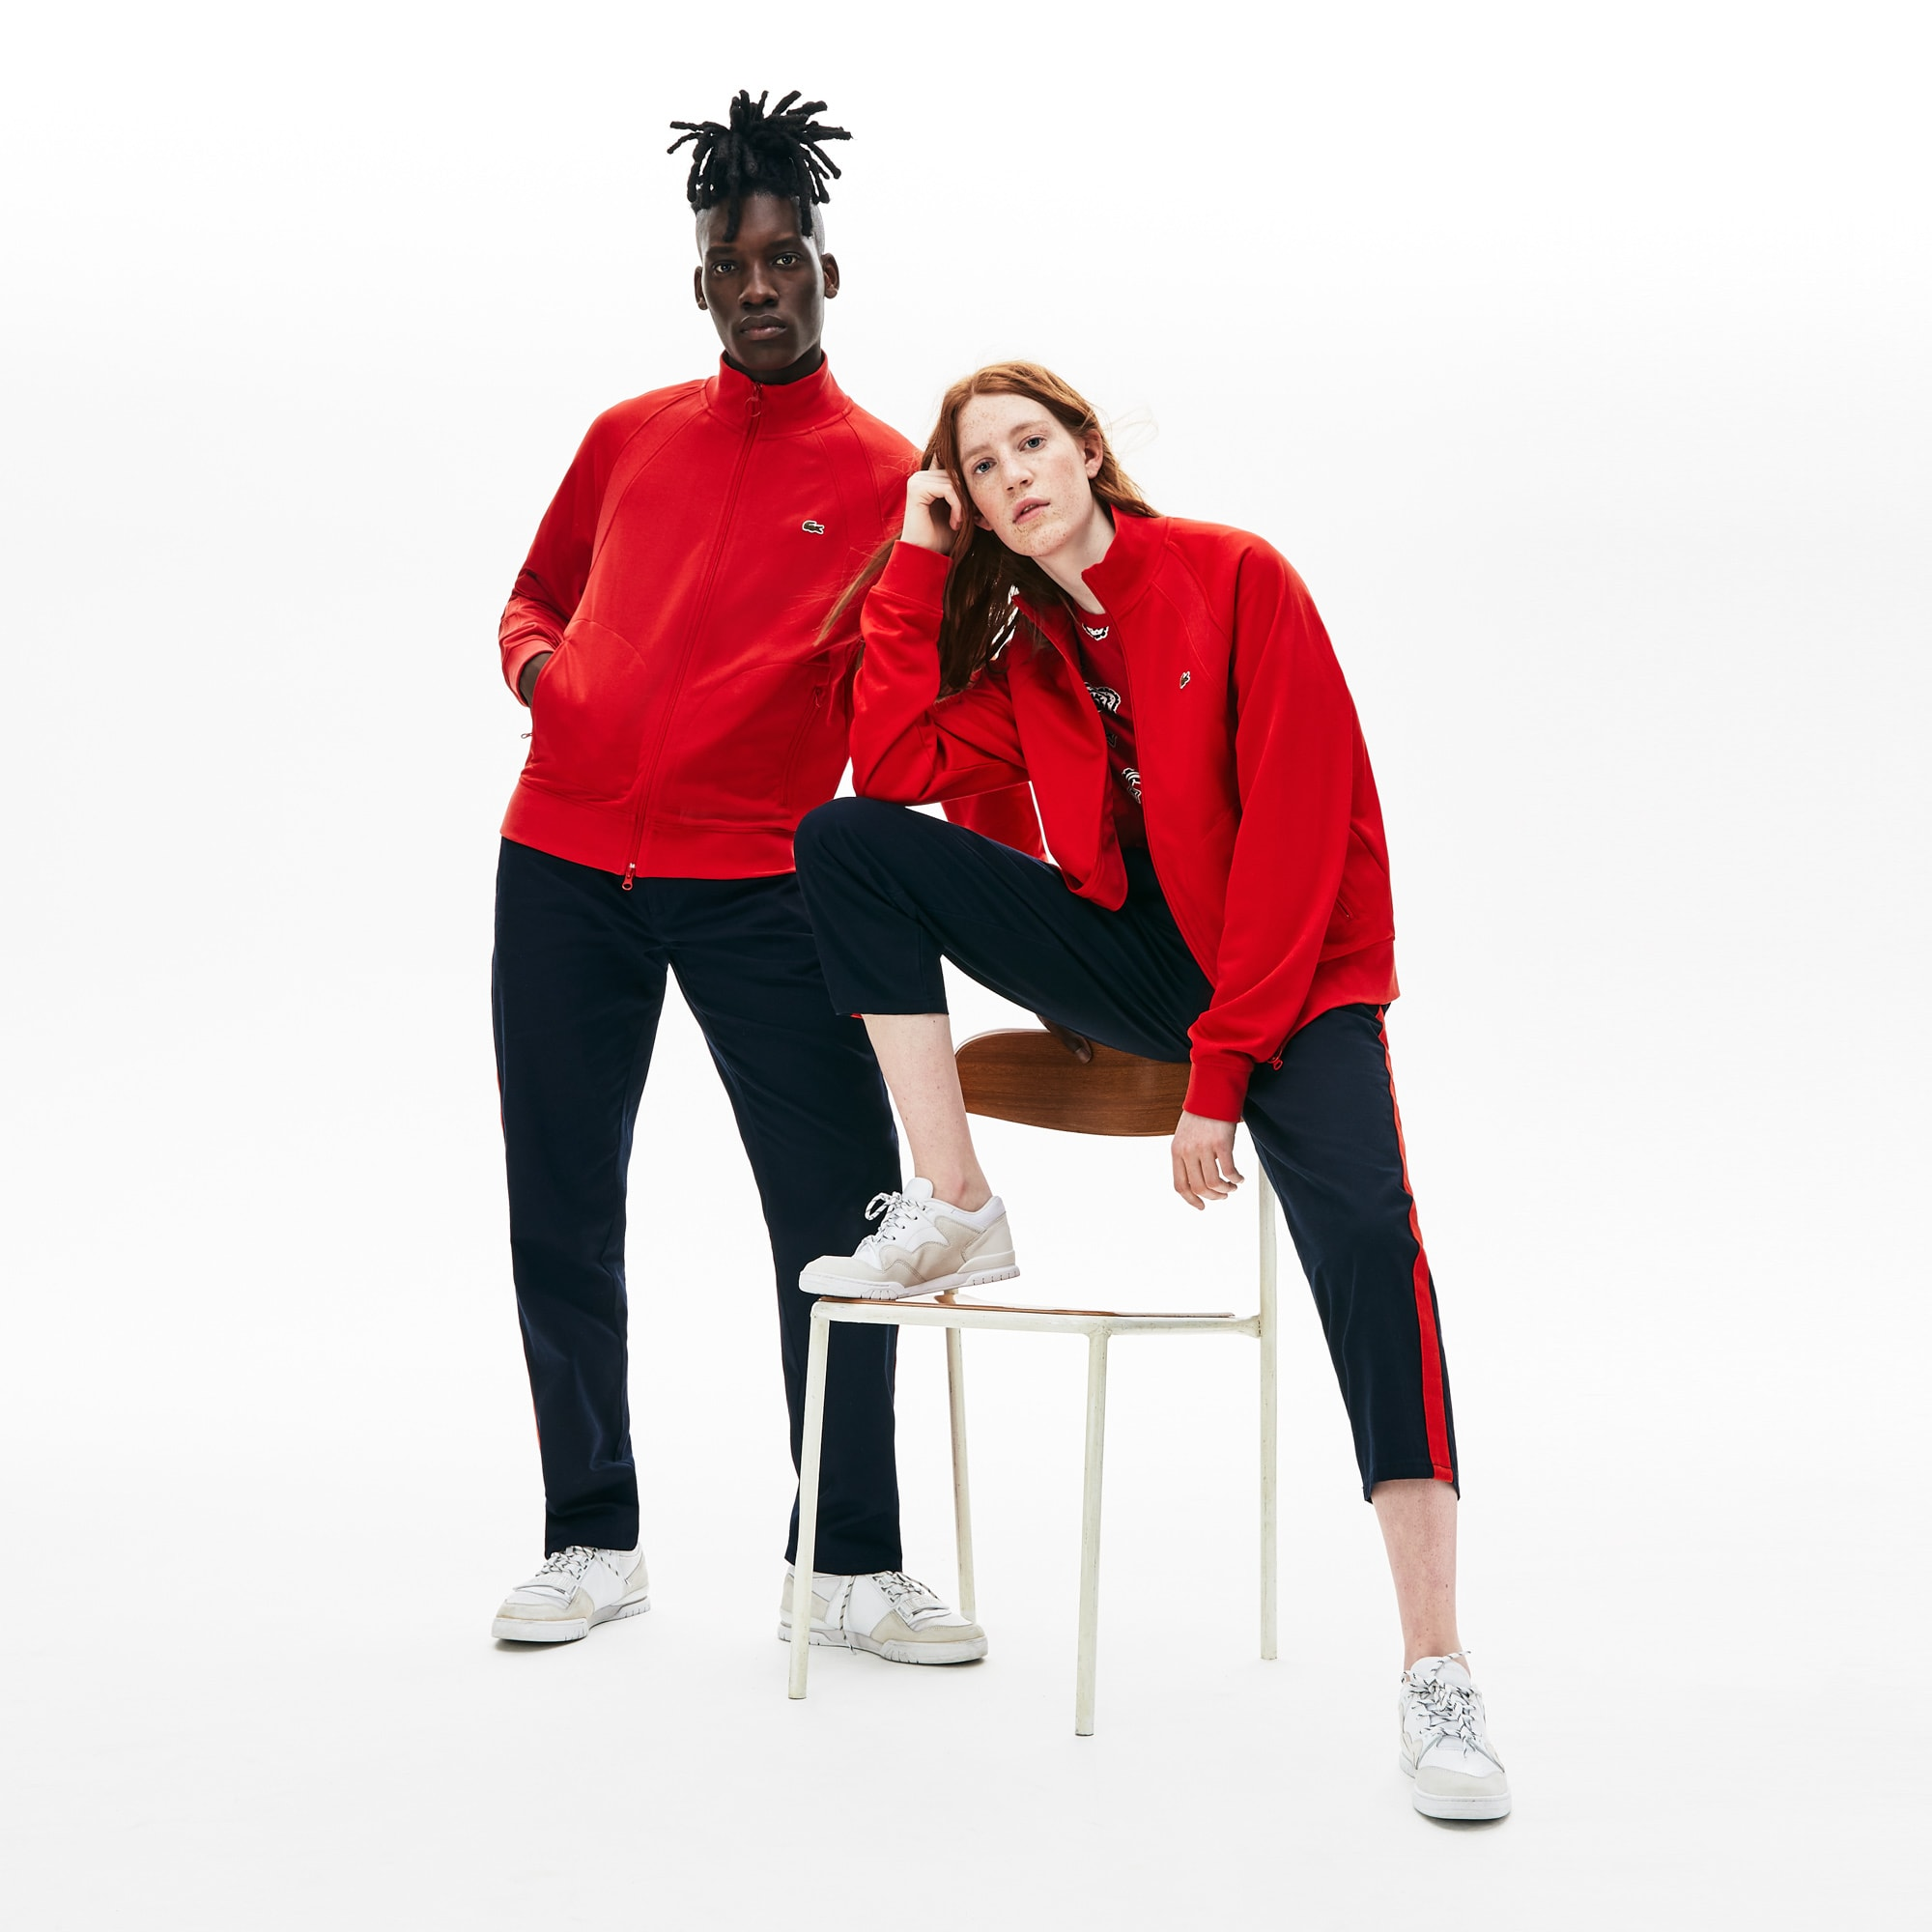 565b0a5fd3 LACOSTE LIVE: Clothing, Footwear & fragrances collection